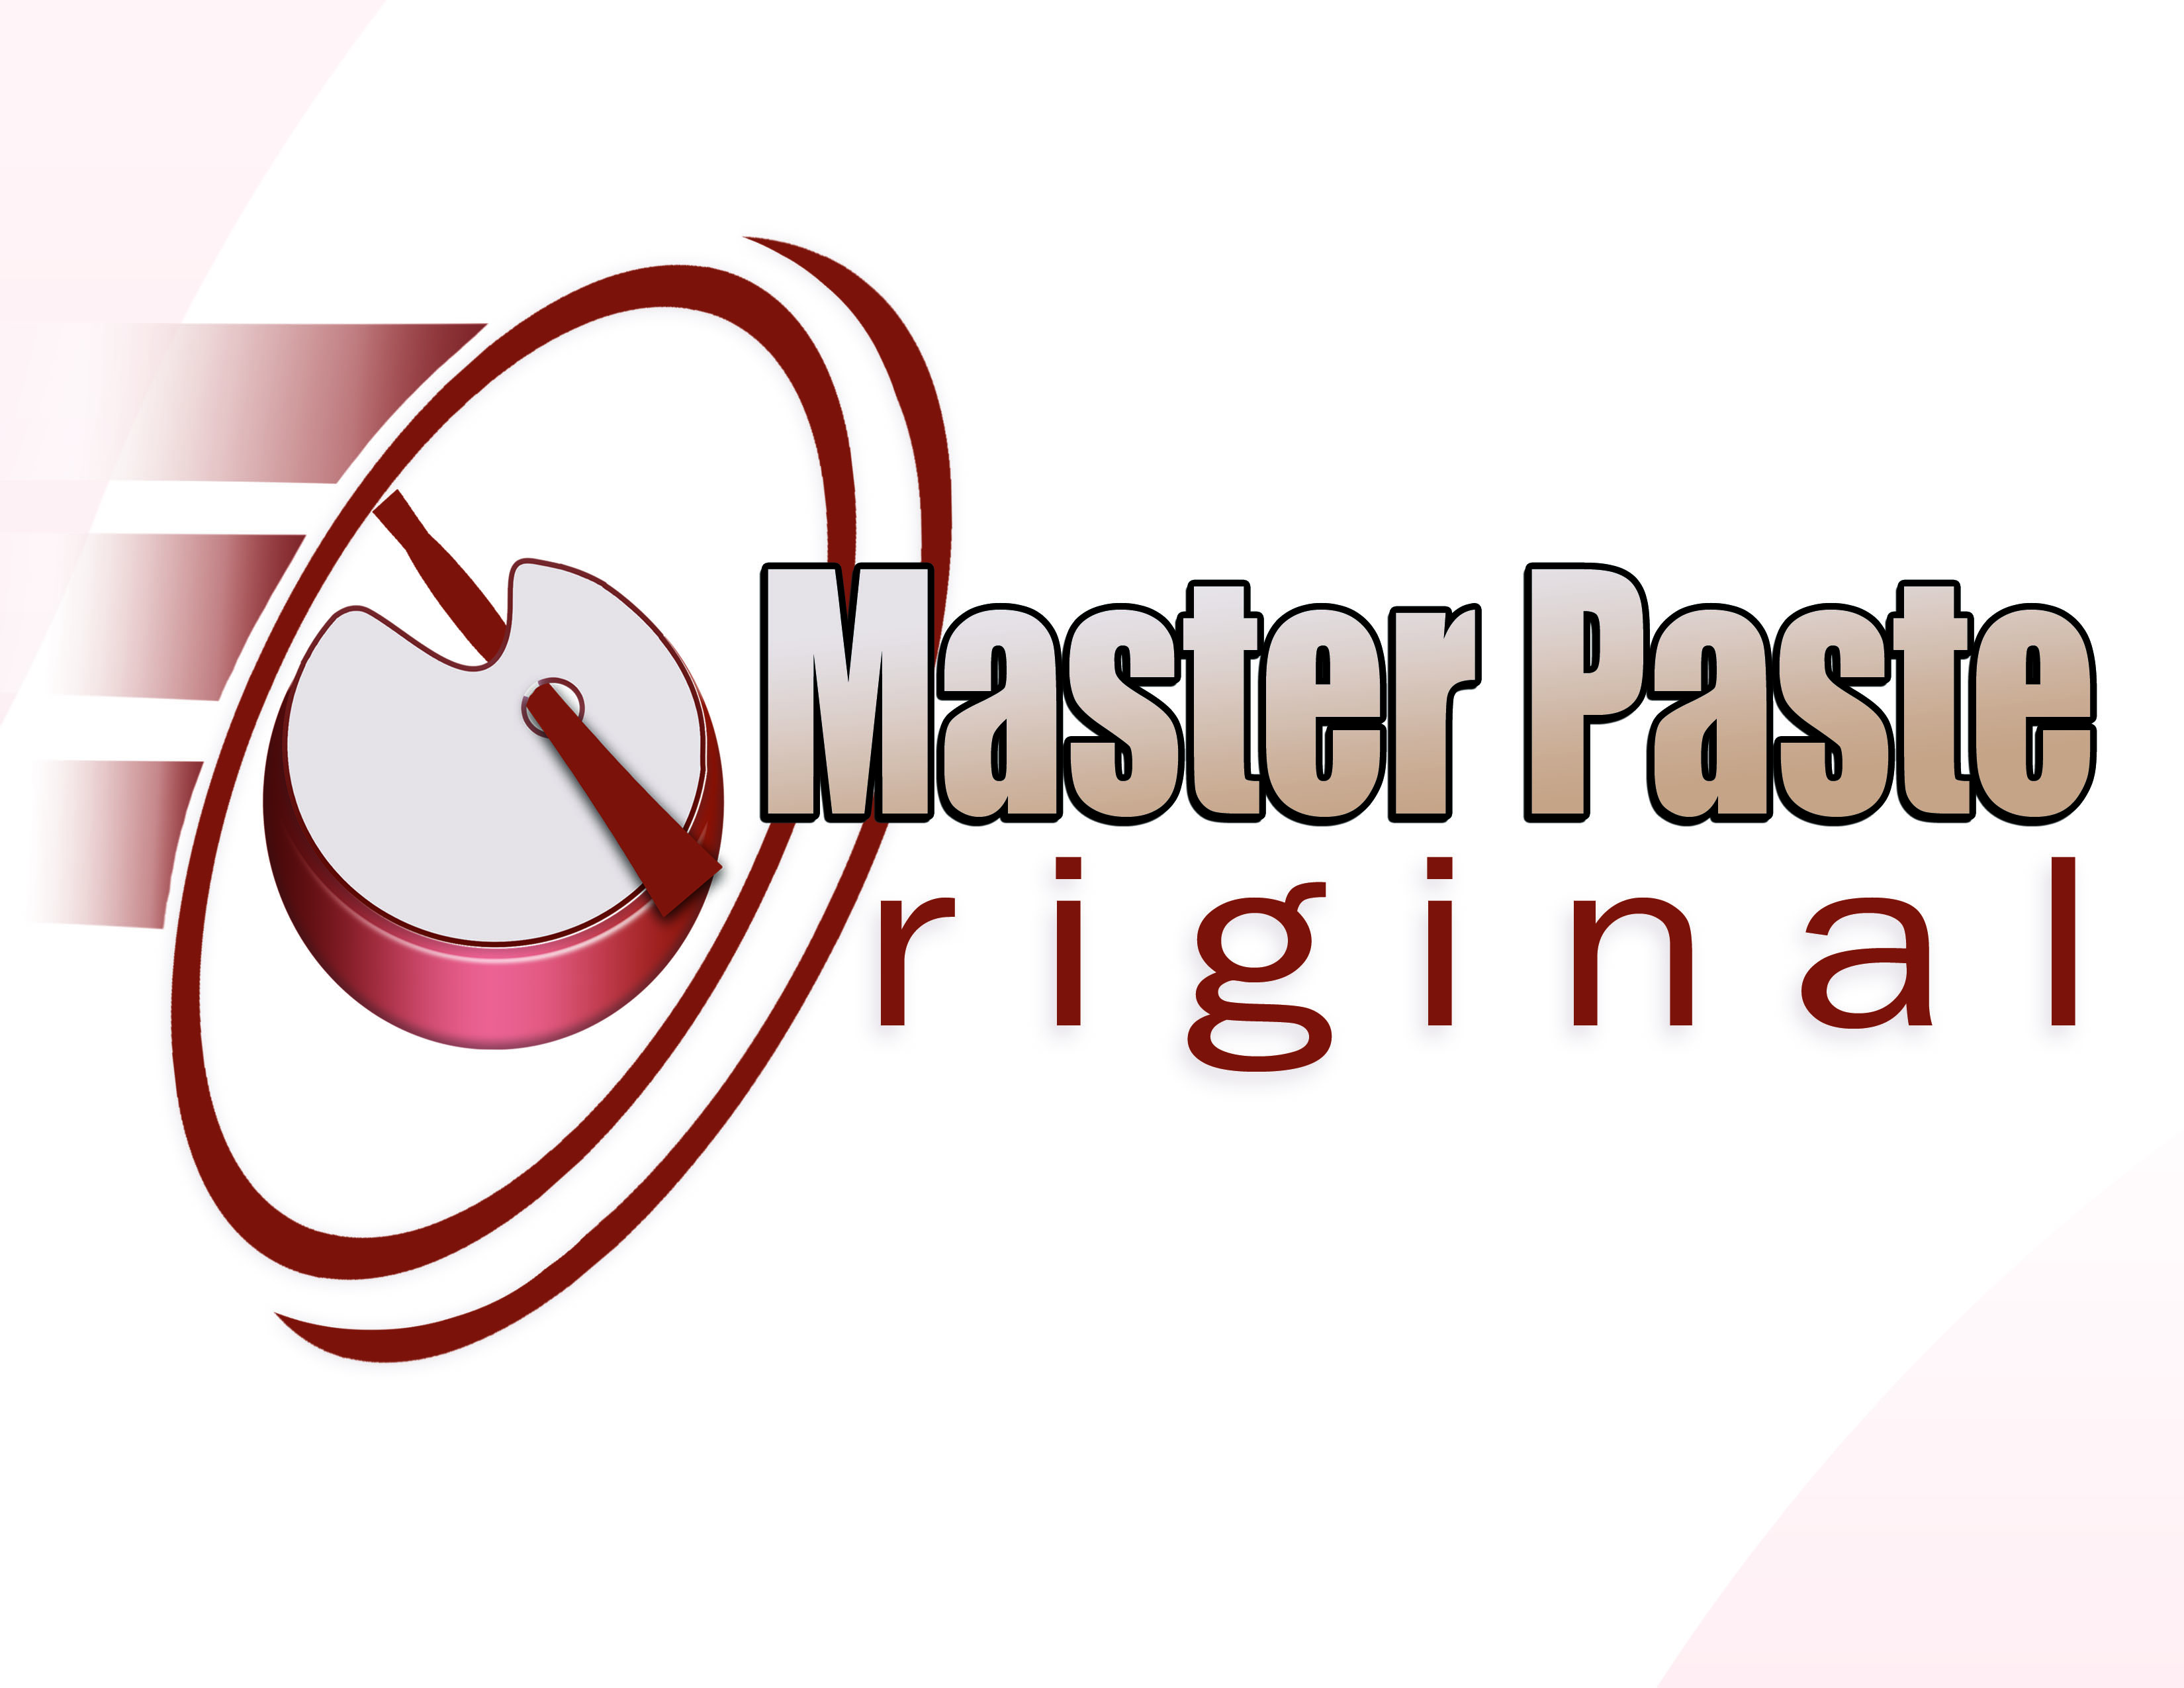 Logo Design by Alan Esclamado - Entry No. 42 in the Logo Design Contest Unique Logo Design Wanted for Master Paste Original™.